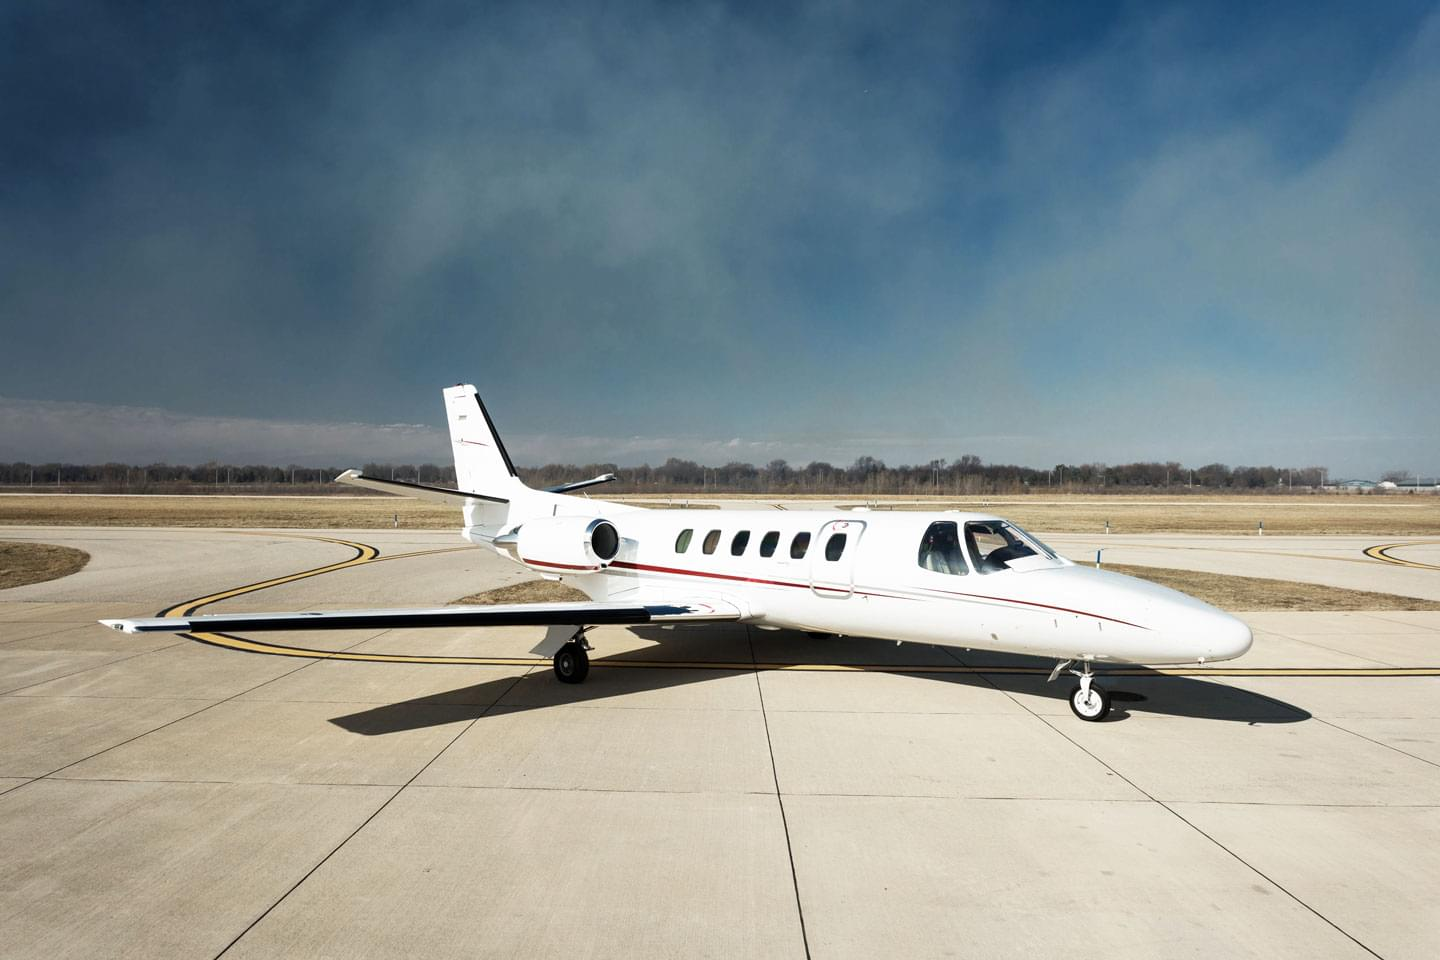 Cessna Citation II mieten Light Jet-7-468.1425485961123-1109